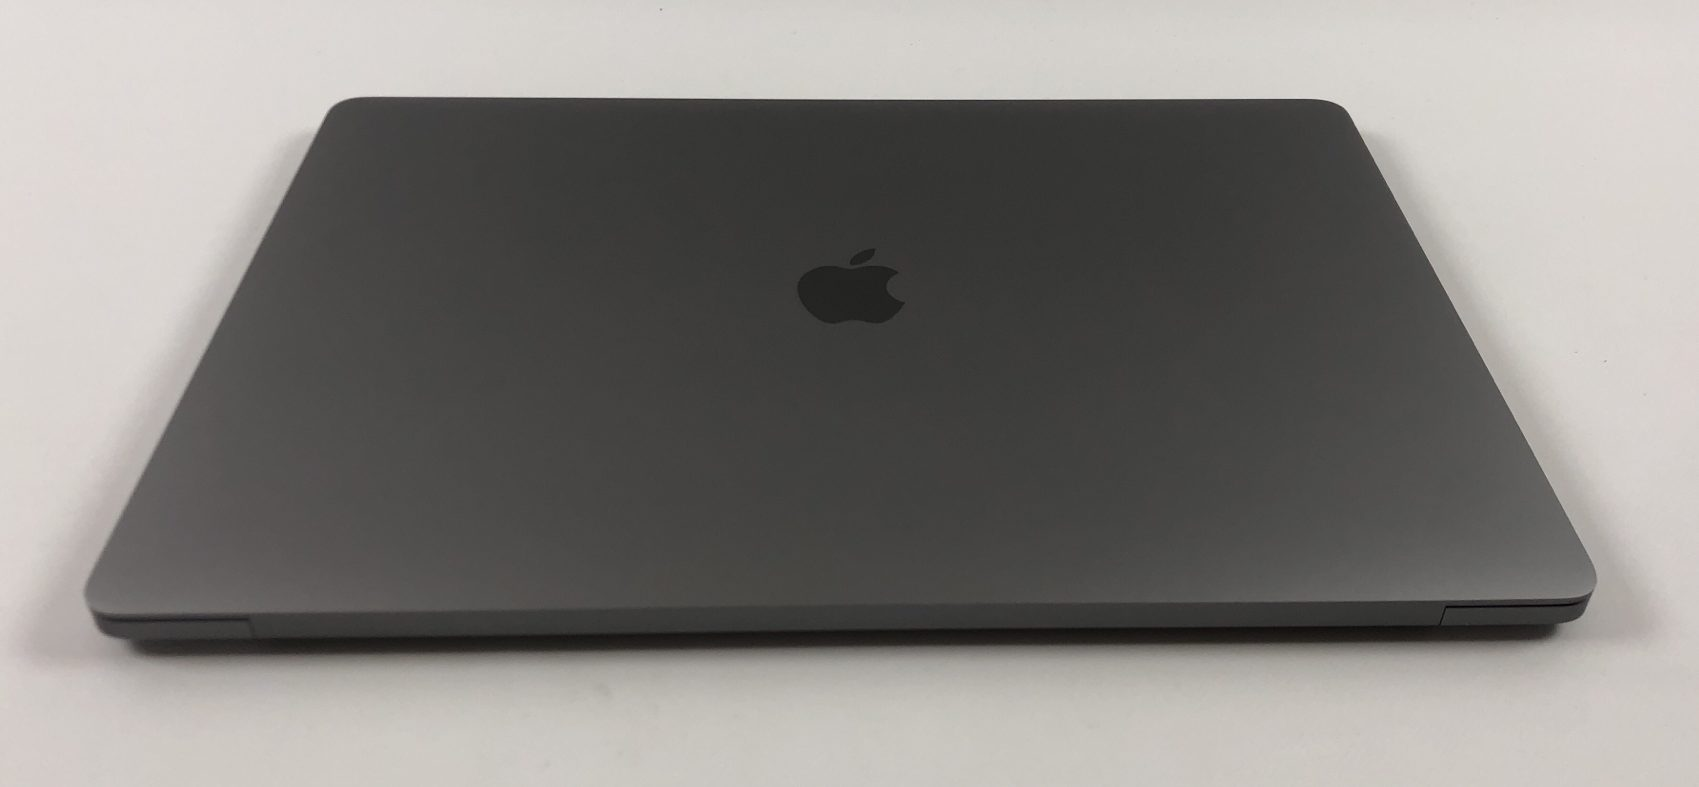 """MacBook Pro 16"""" Touch Bar Late 2019 (Intel 6-Core i7 2.6 GHz 16 GB RAM 2 TB SSD), Space Gray, Intel 6-Core i7 2.6 GHz, 16 GB RAM, 2 TB SSD, imagen 2"""